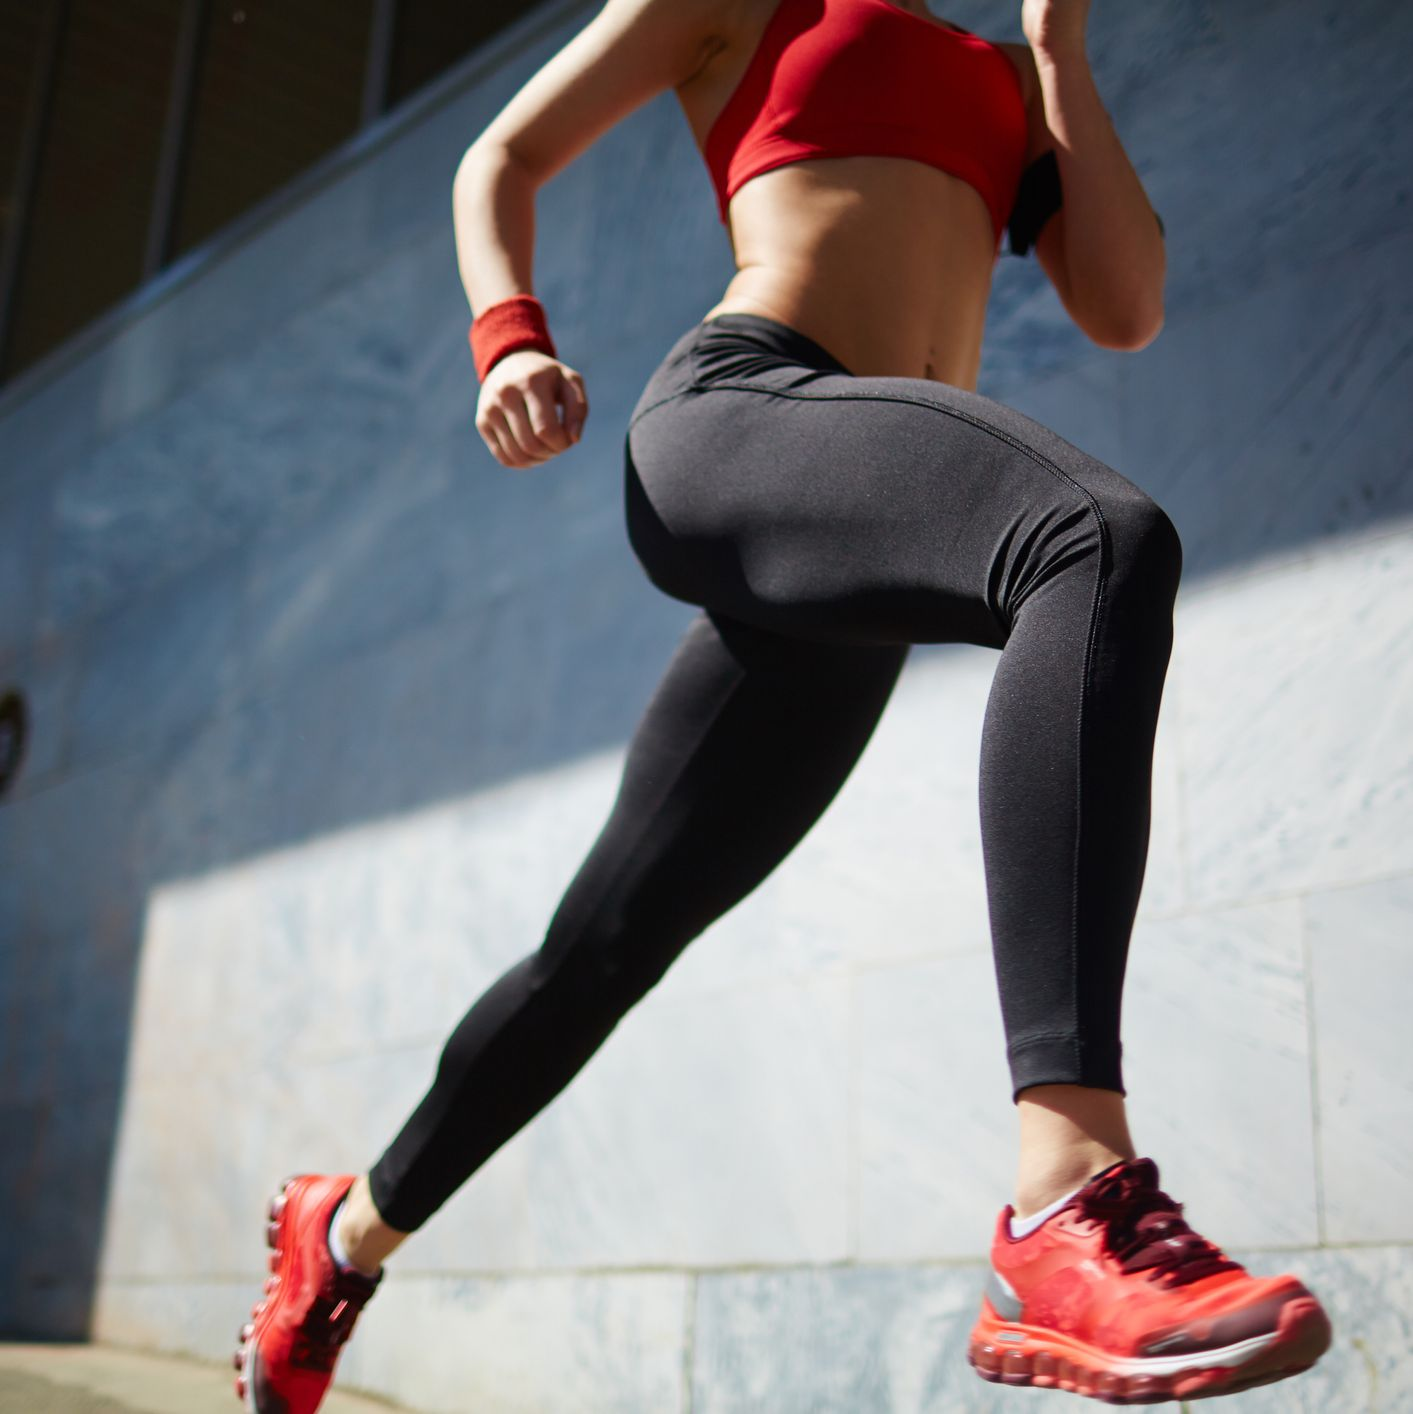 Why You Get Knee Pain While Running—And How To Make It Stop